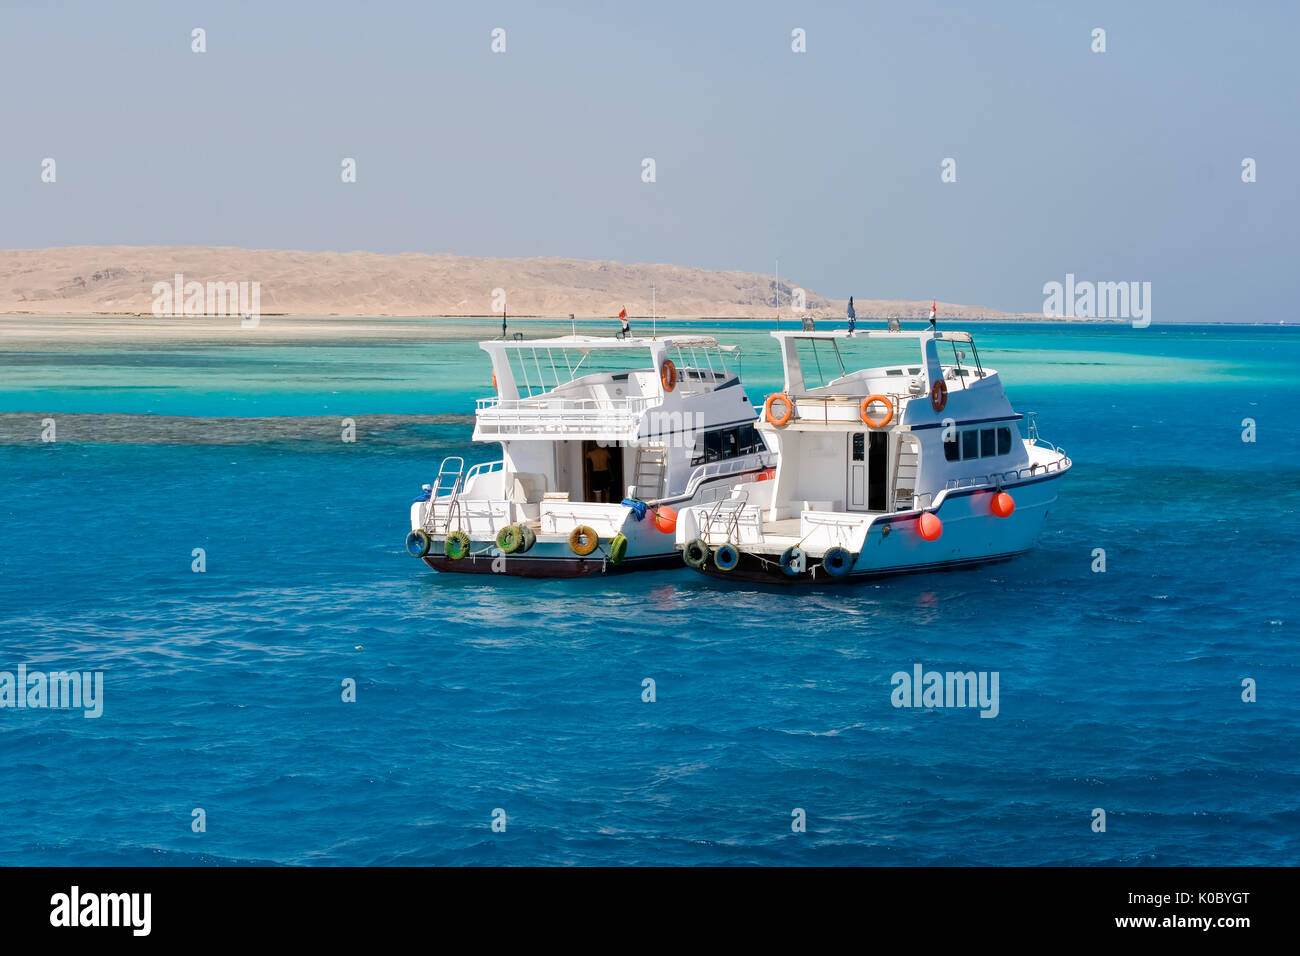 two yachts anchored outside Giftin Island in the Red Sea, a popular tourist destintion - Stock Image